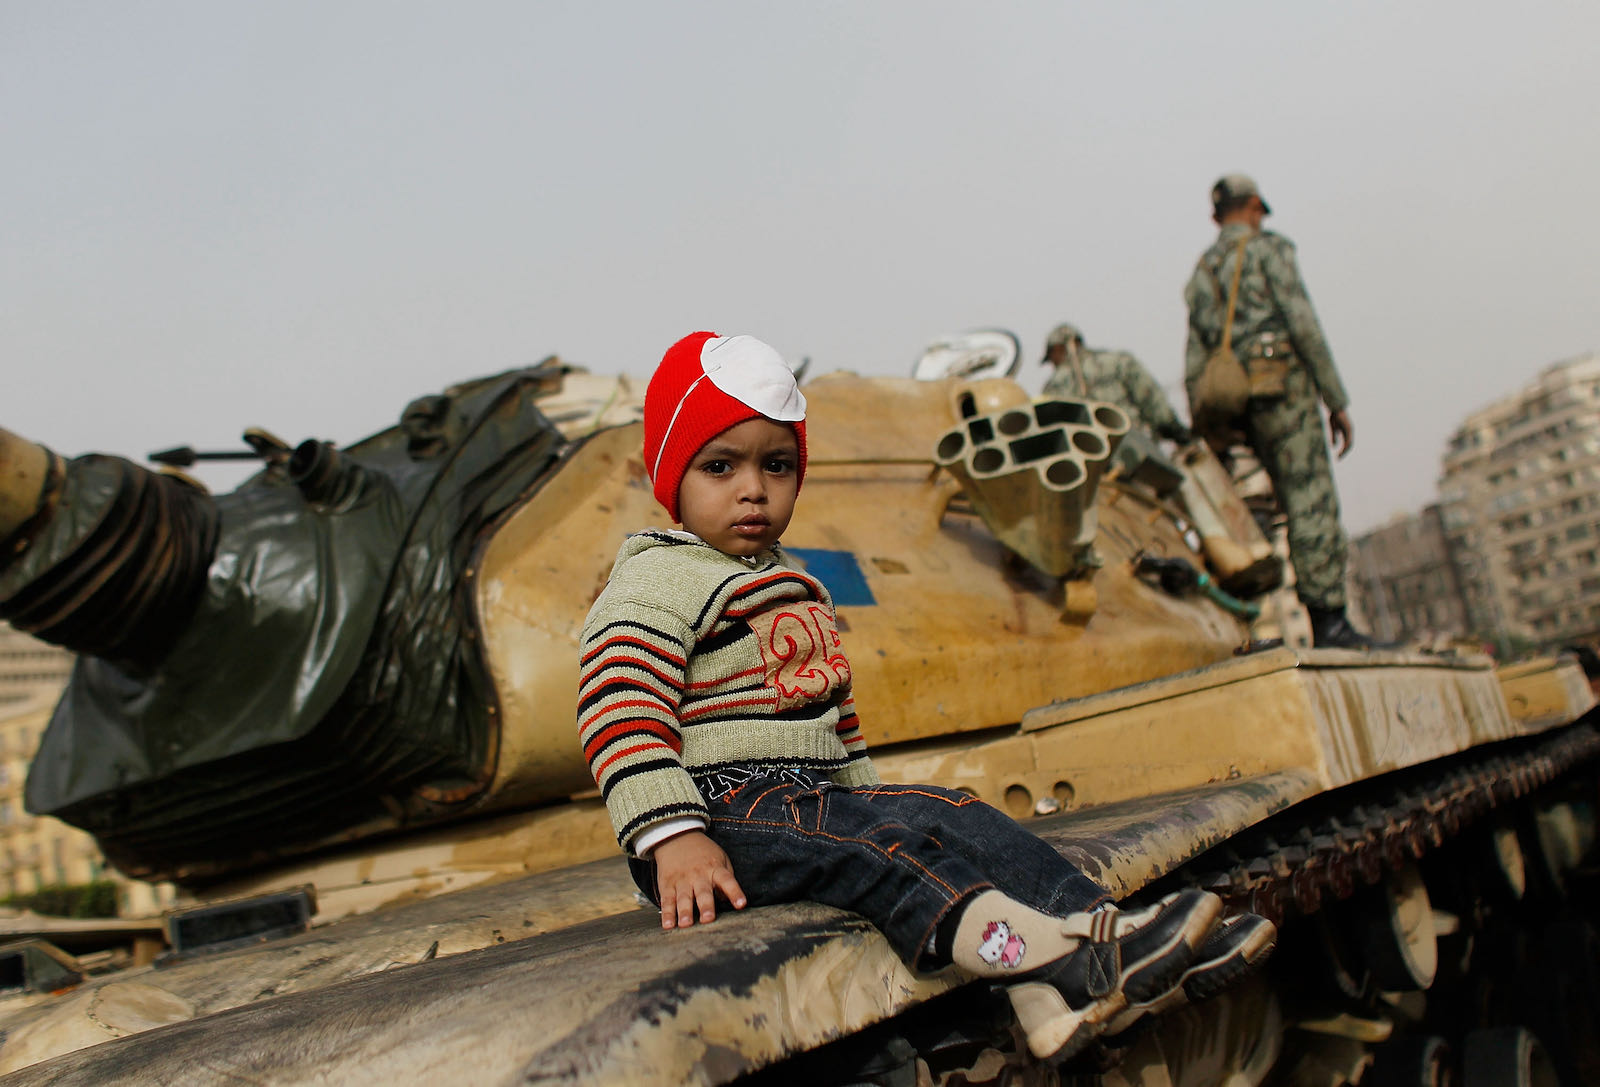 A child sitting on a tank